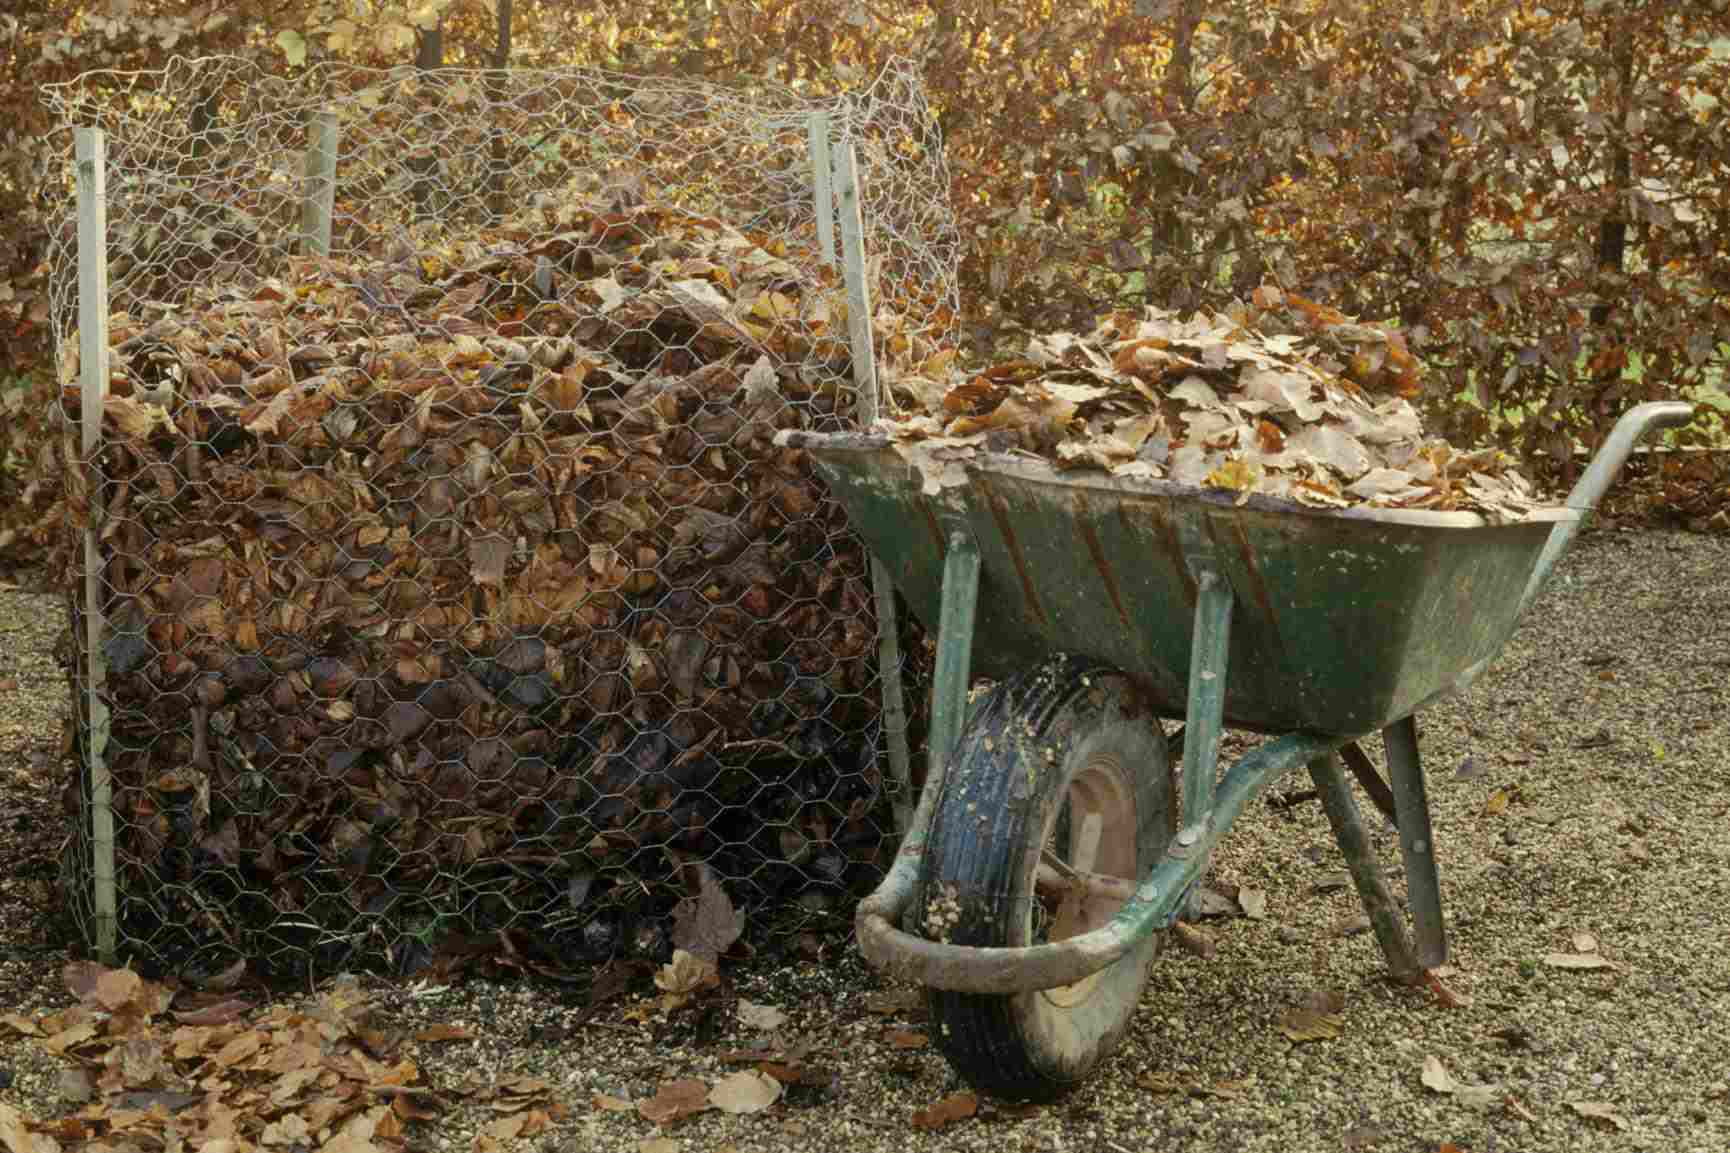 Composting leaves to make leaf mould, wheelbarrow of autumn leaves beside compost bin made of chicken wire netting